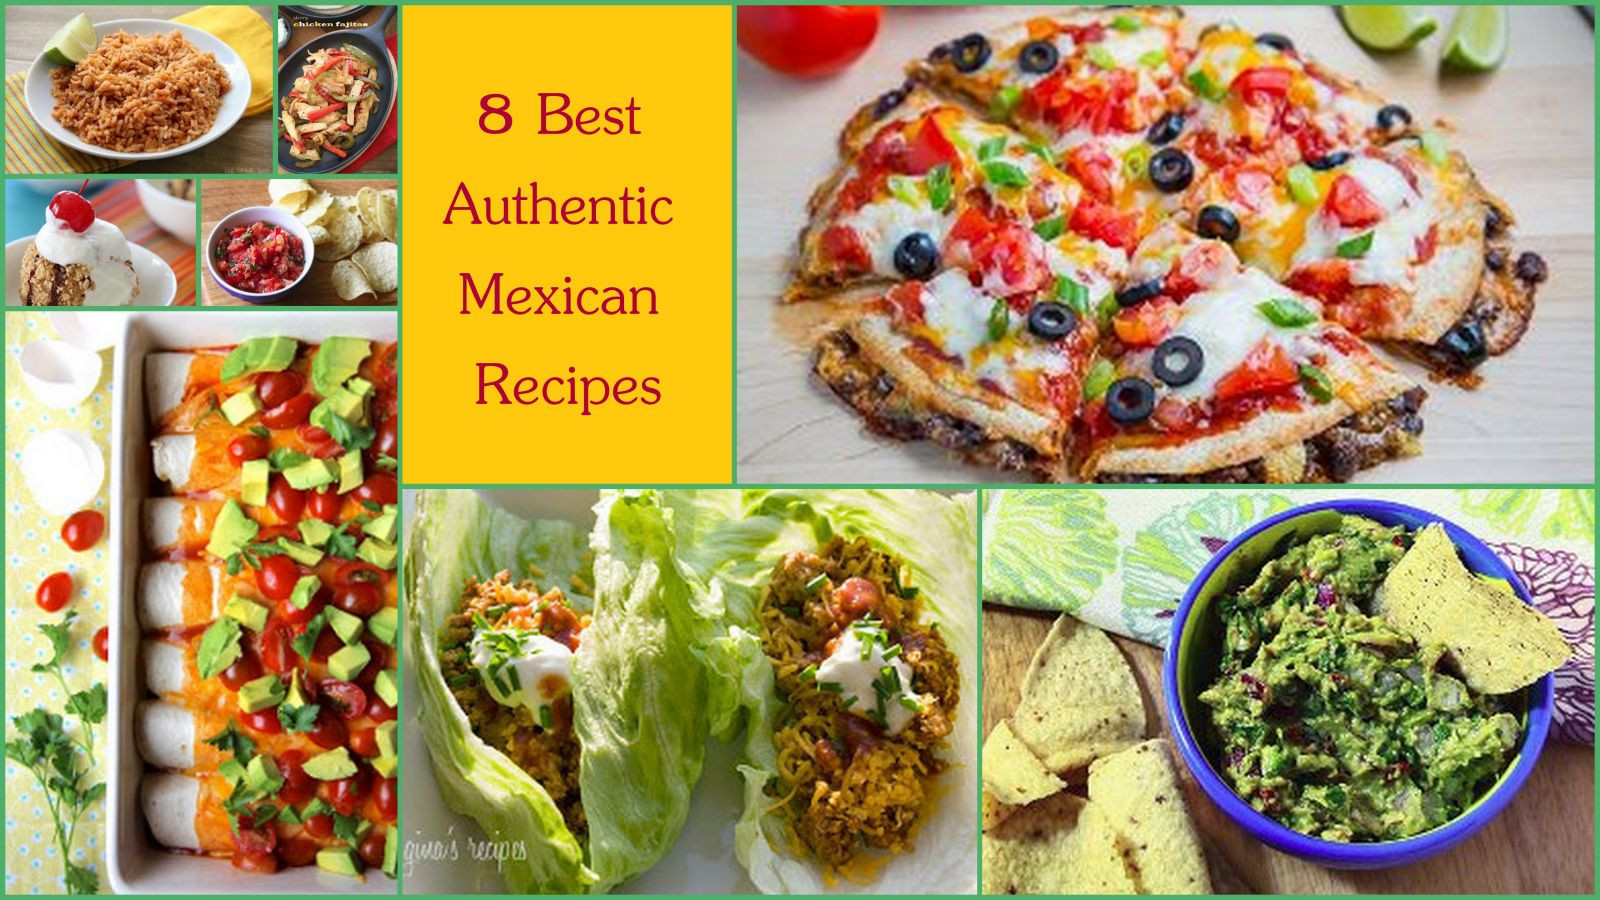 Authentic Mexican Food Recipes  8 Best Authentic Mexican Recipes